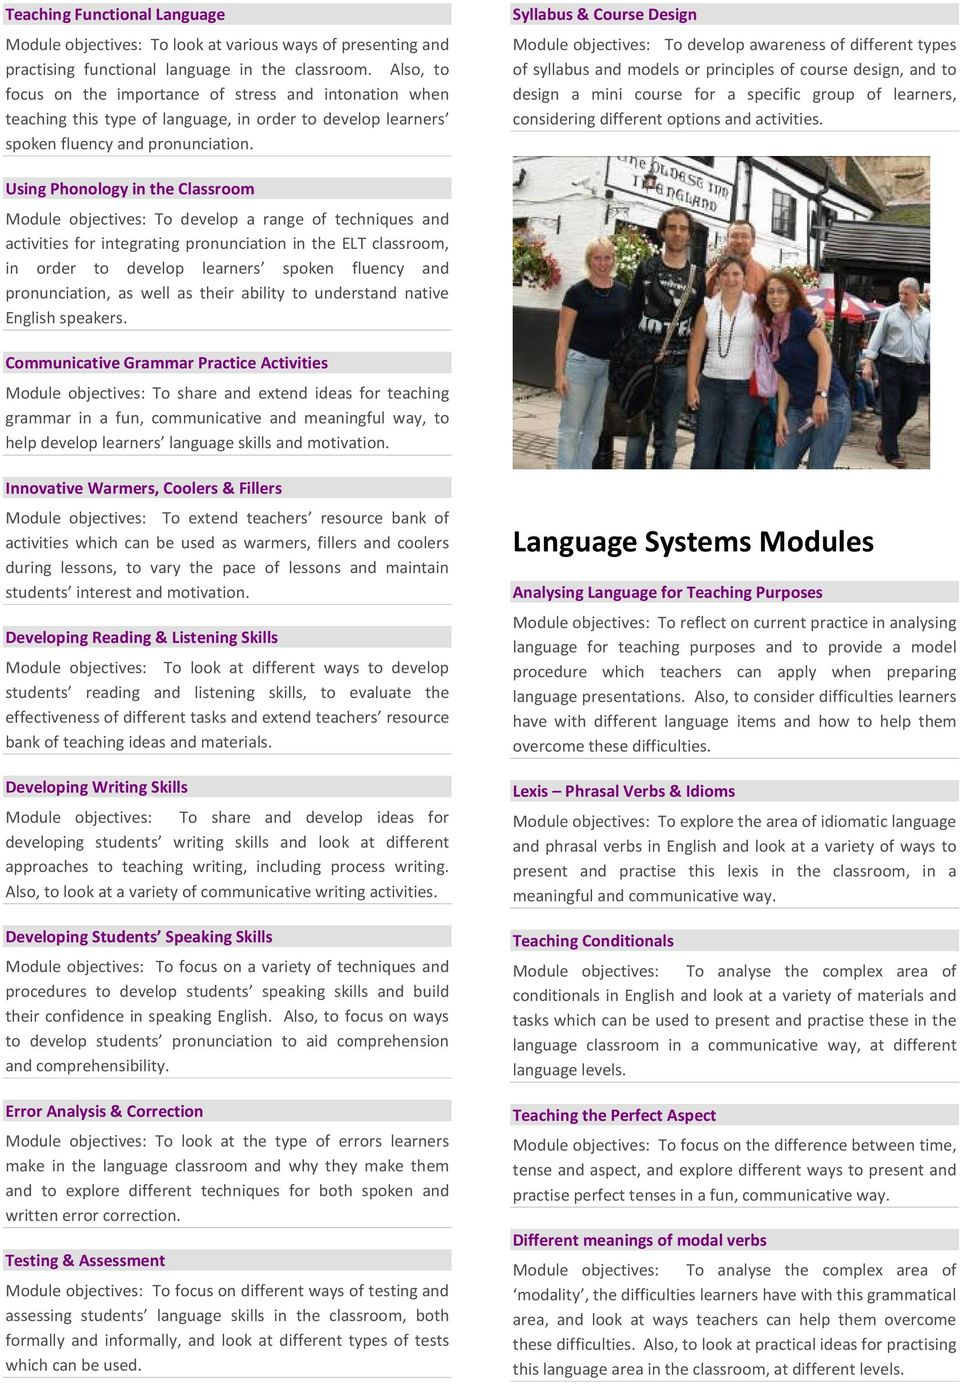 Syllabus & Course Design Module objectives: To develop awareness of different types of syllabus and models or principles of course design, and to design a mini course for a specific group of